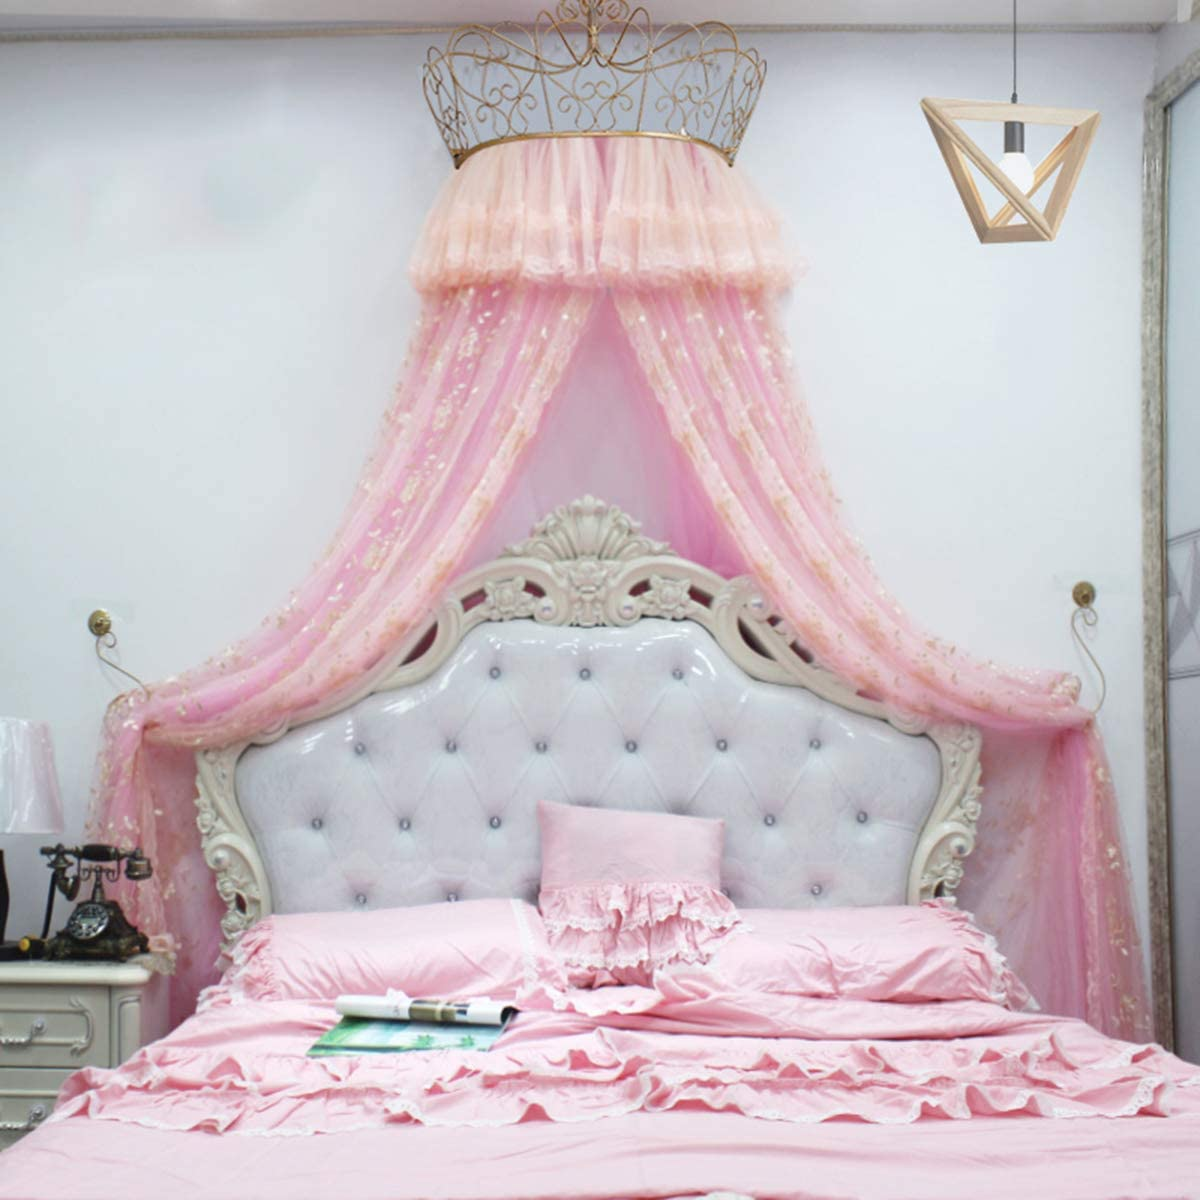 Ainy Bed Canopy Queen with Crown Rack Round Lace Canopies Mosquito Net for Girls Kids Princess Style Household Bedroom Decorations for 1.5M 1.8M Bed Double,Pink,2.0m(6.6ft) Bed